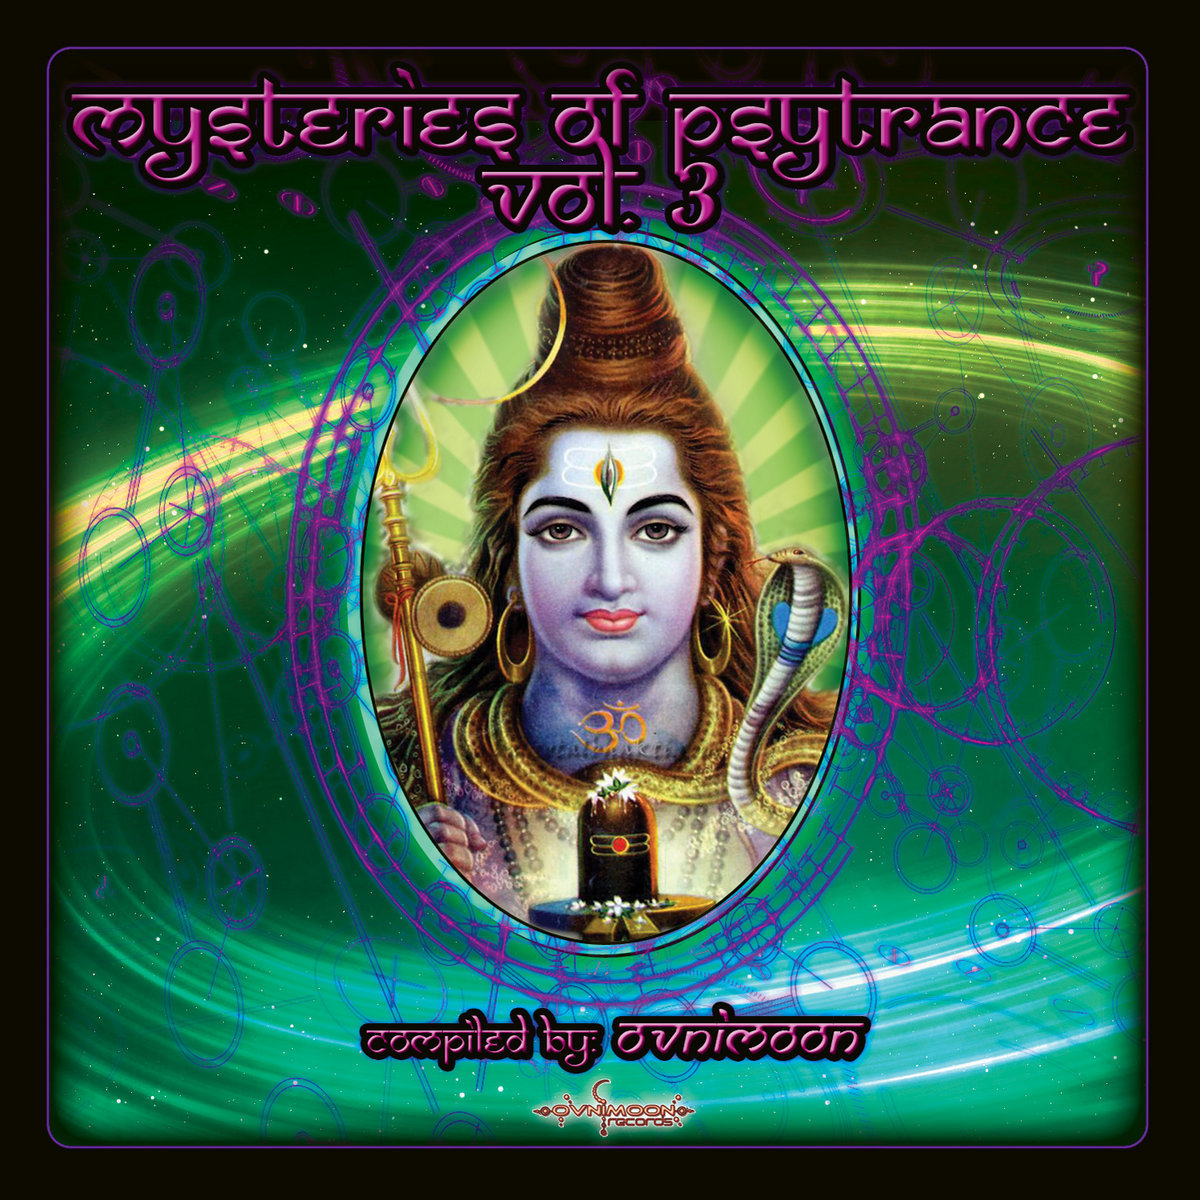 Mysteries of Psytrance Vol  3 - Compiled by Ovnimoon